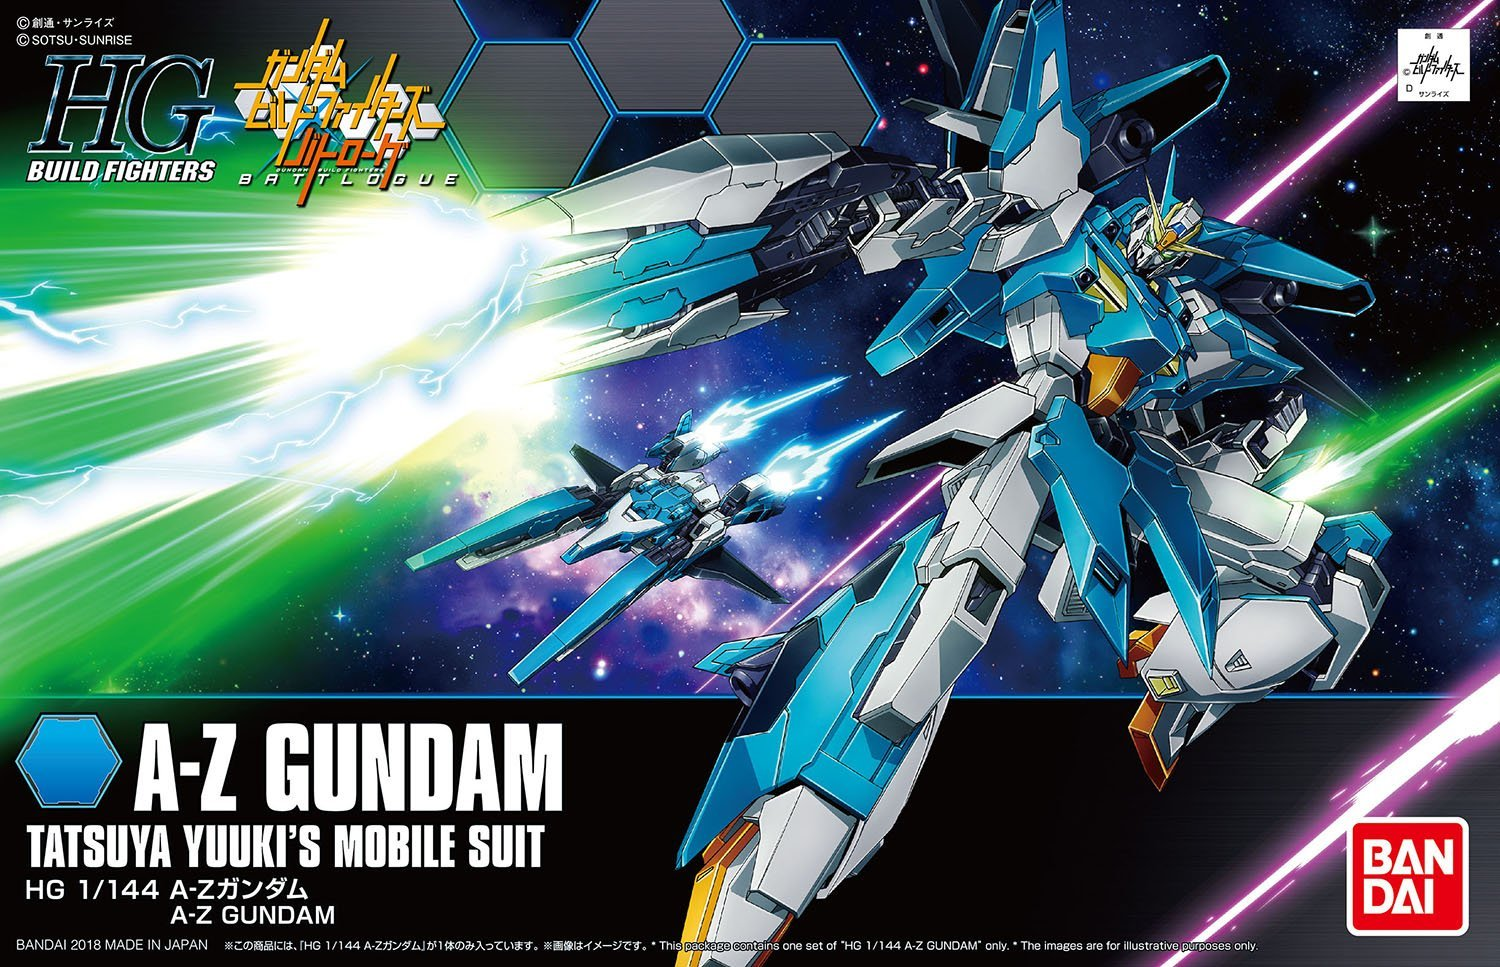 HGBF 1/144 amazon.co.jp A-Zガンダム [A-Z GUNDAM]